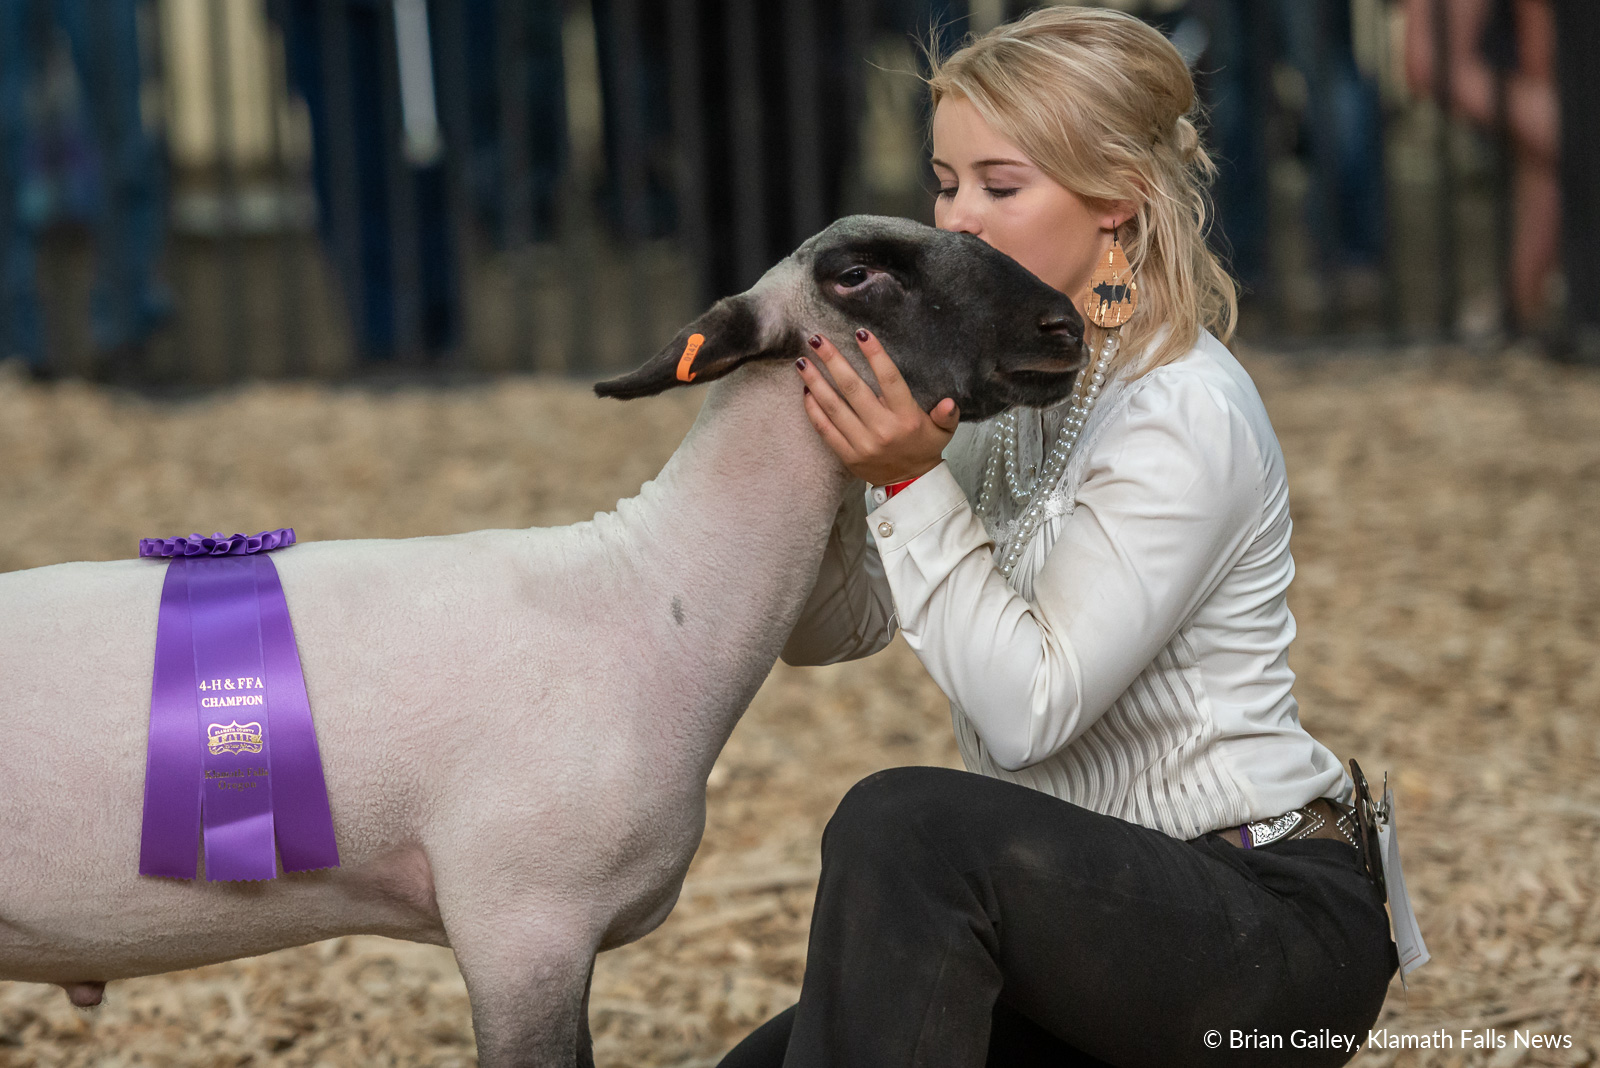 Madison Shearer celebrates with her sheep after winning Grand Champion Showman at the 2019 Klamath Count Fair. August 3, 2019 (Image, Brian Gailey / Klamath Falls News)